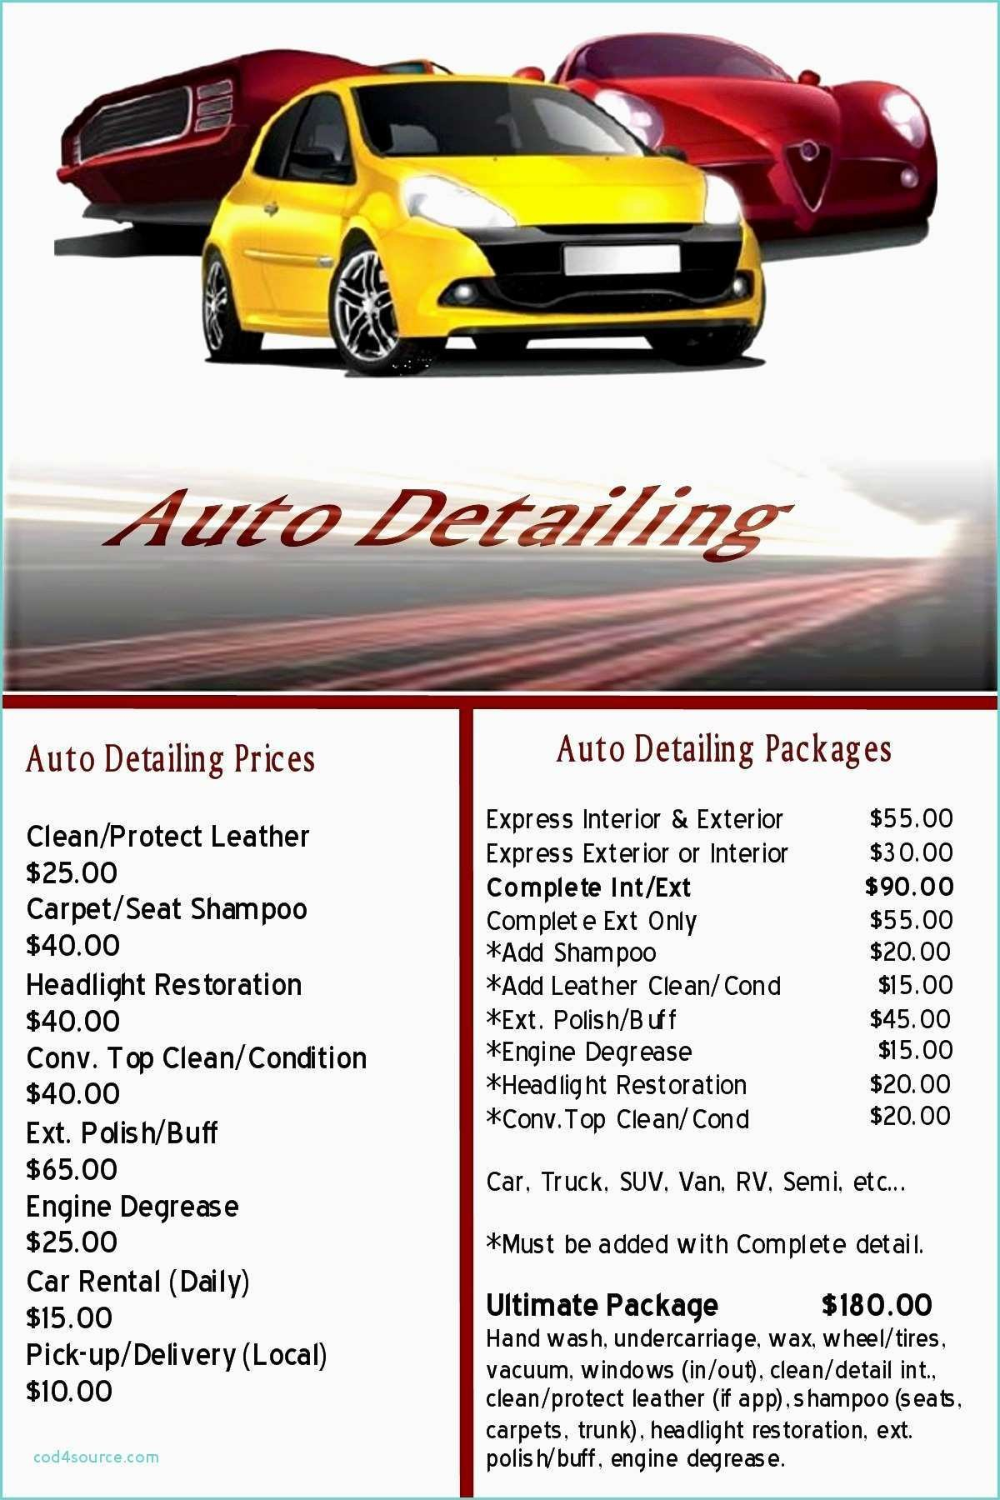 Auto Detailing Gift Certificate Template With Free Plus Together As Pertaining To Automotive Gift Certificate Template In 2020 Gift Certificate Template Automotive Gift Certificate Templates